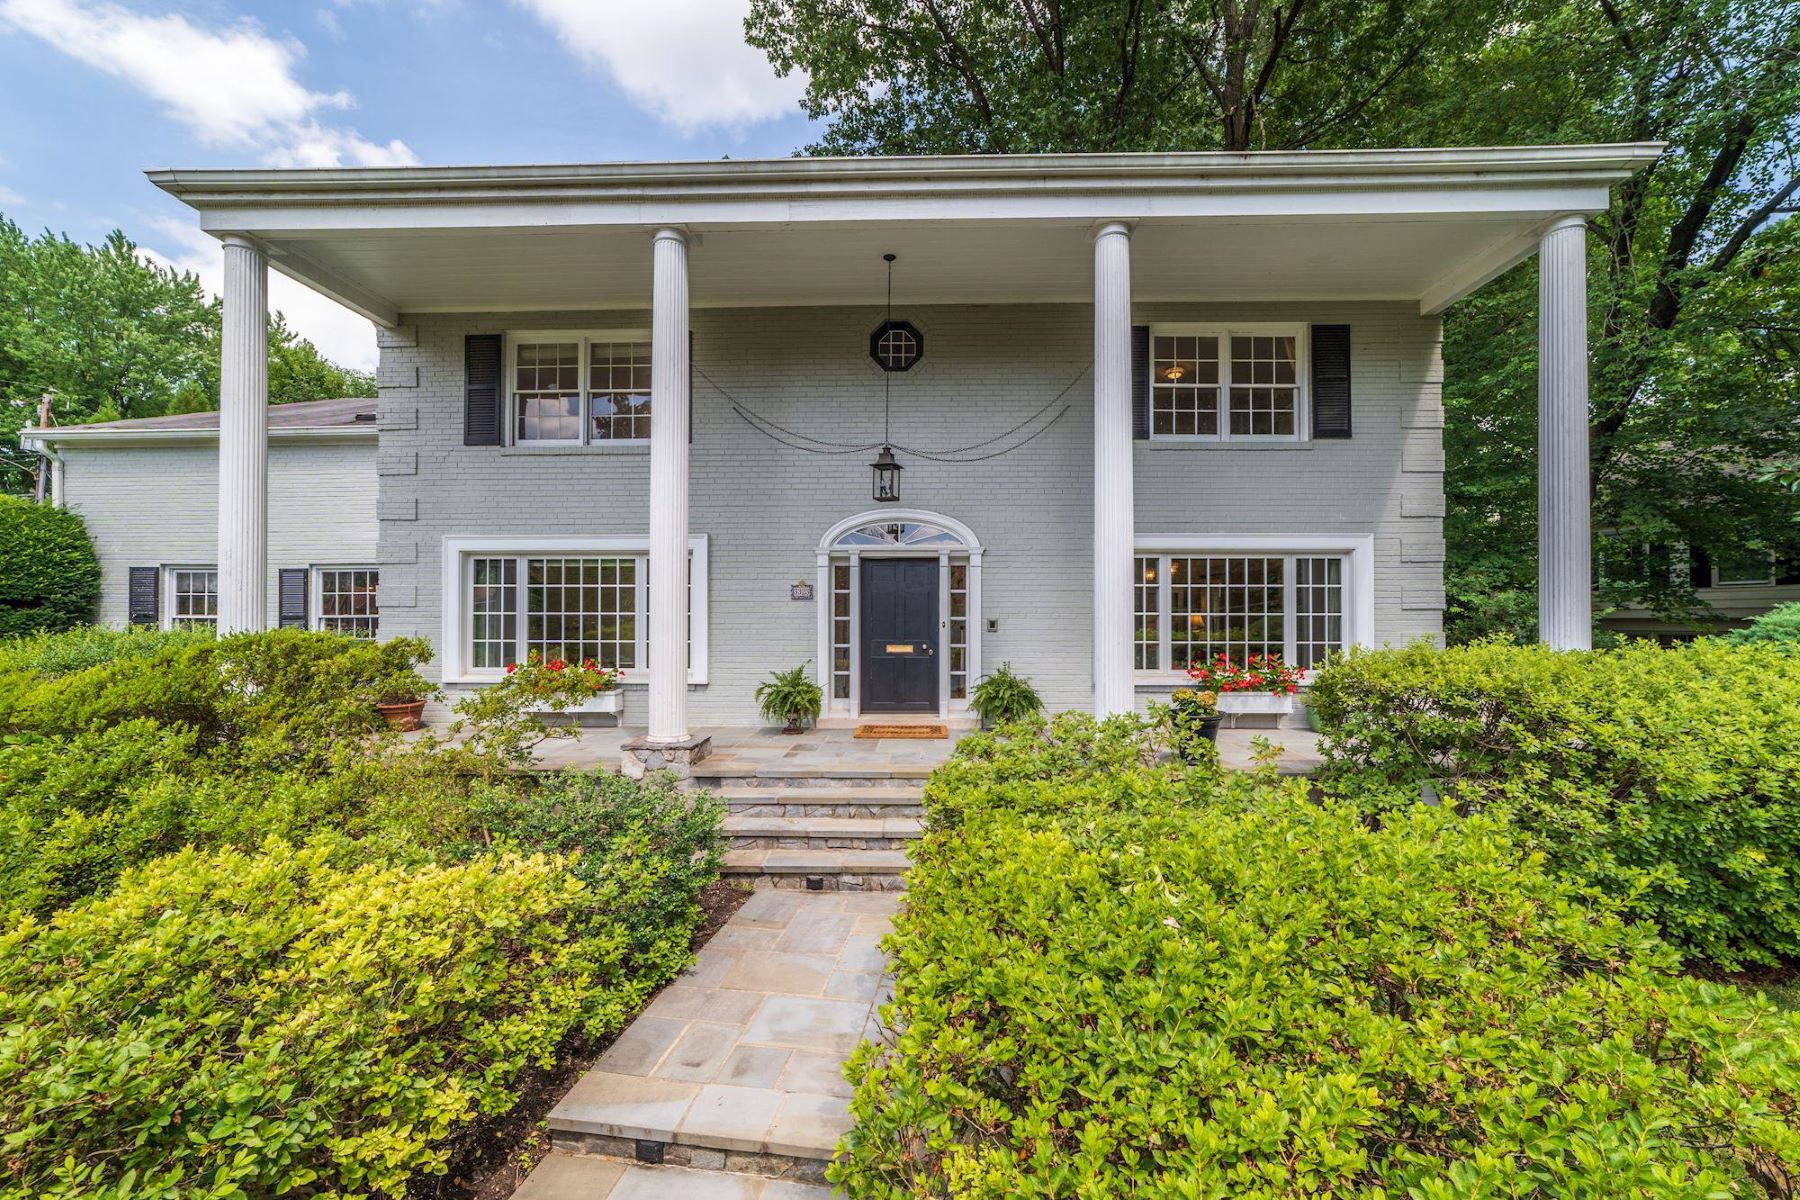 Single Family Homes for Active at 3323 N Vermont St Arlington, Virginia 22207 United States